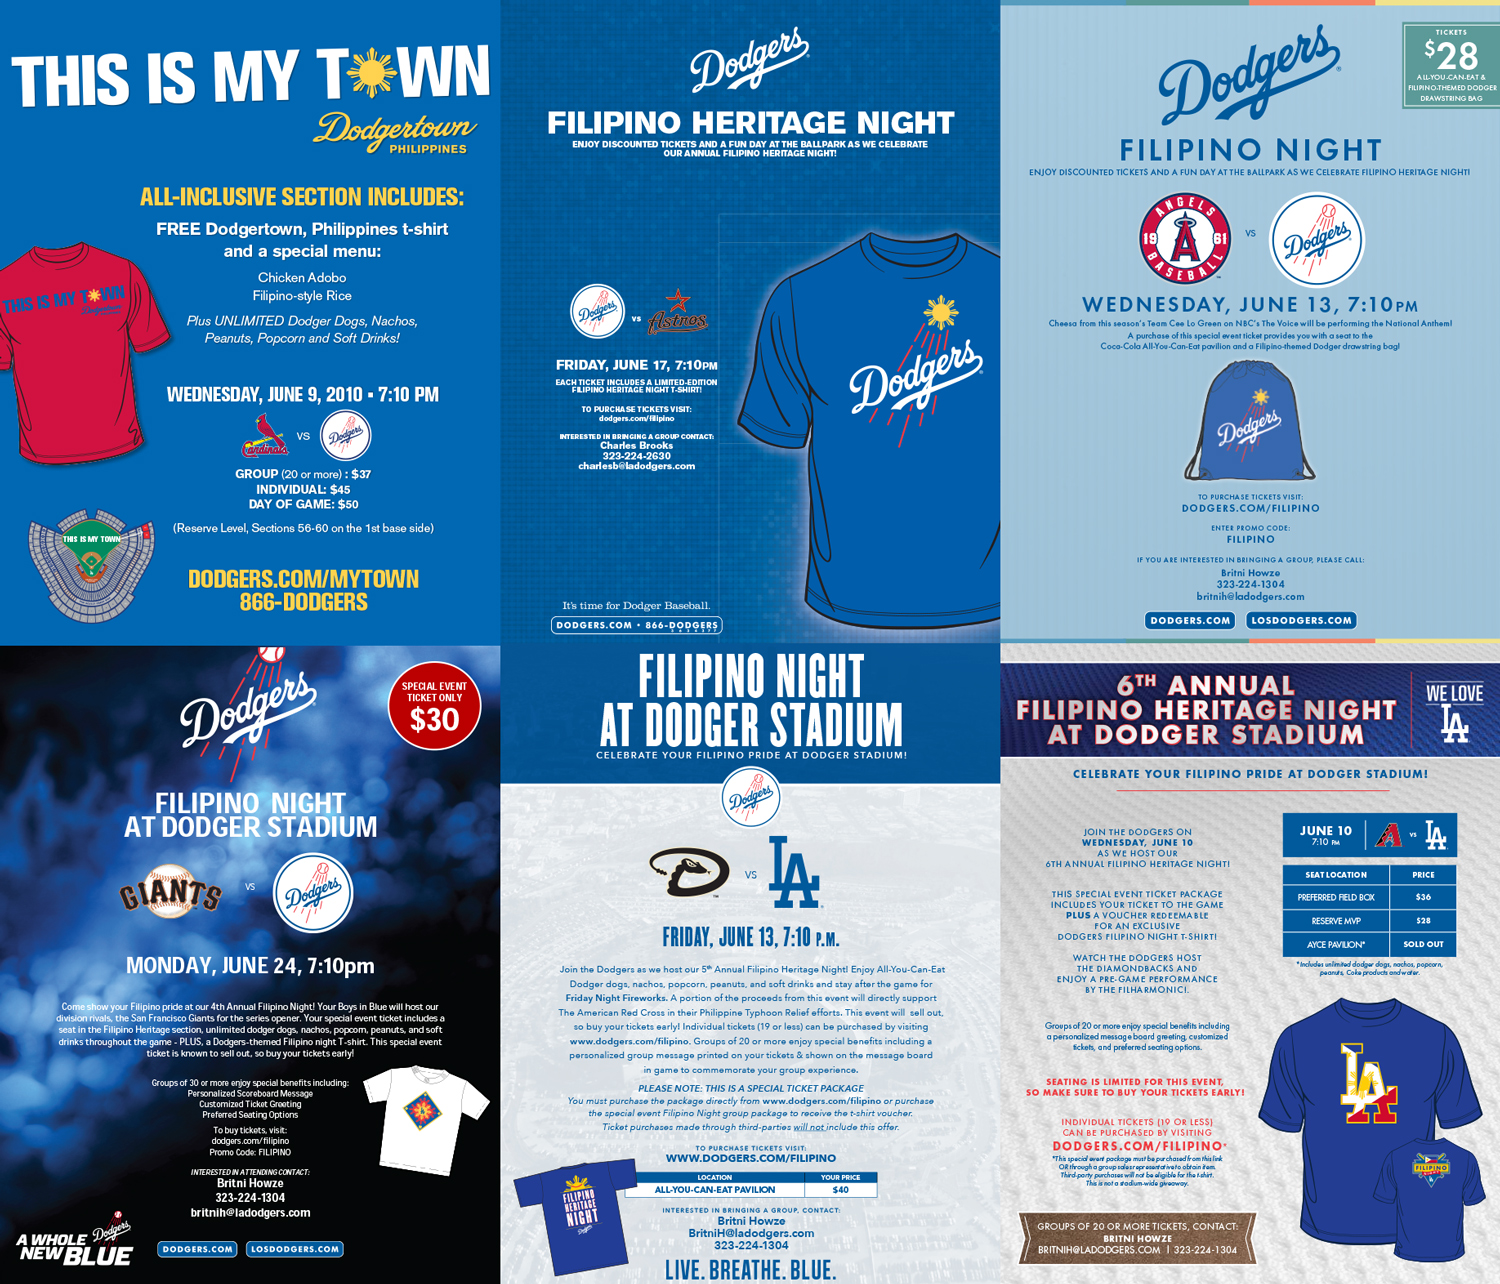 Promotional posters for the Los Angeles Dodgers' Filipino Night at Dodger Stadium (Images courtesy of the Los Angeles Dodgers)